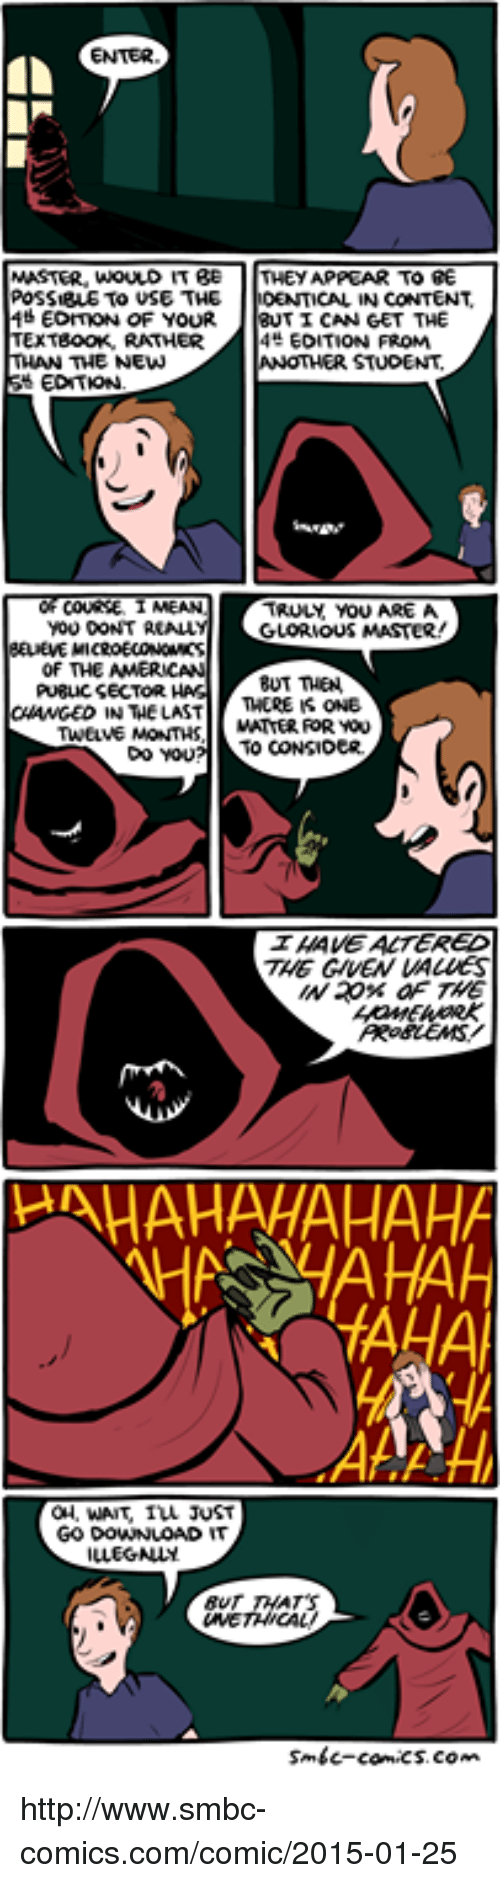 Smbc Comic: MASTER, WOULD IT BE  THEY APPEAR TO BE  POSSIBLE TO USE THE  DENTICAL IN CONTENT  EDMON OF YOUR  TI CAN GET THE  TExTeooK, RATHER  EDITION FROM  THE NEW  EDITION.  TRULY, YOU AREA  YOU DONT REALLY  GLORIOUS MASTER  of THE AMERICAN  PU8LICSECTOR.  BUT THEN  THERE IS ONE  N THE LAST  MATTER FOR YOU  TWELVE MONTHS  TO CONSICER.  Do YOU  ALTERED  HAHAHAHAHAHA  WAIT IVL JUST  GO DOWNLOAD  smbc-comic http://www.smbc-comics.com/comic/2015-01-25